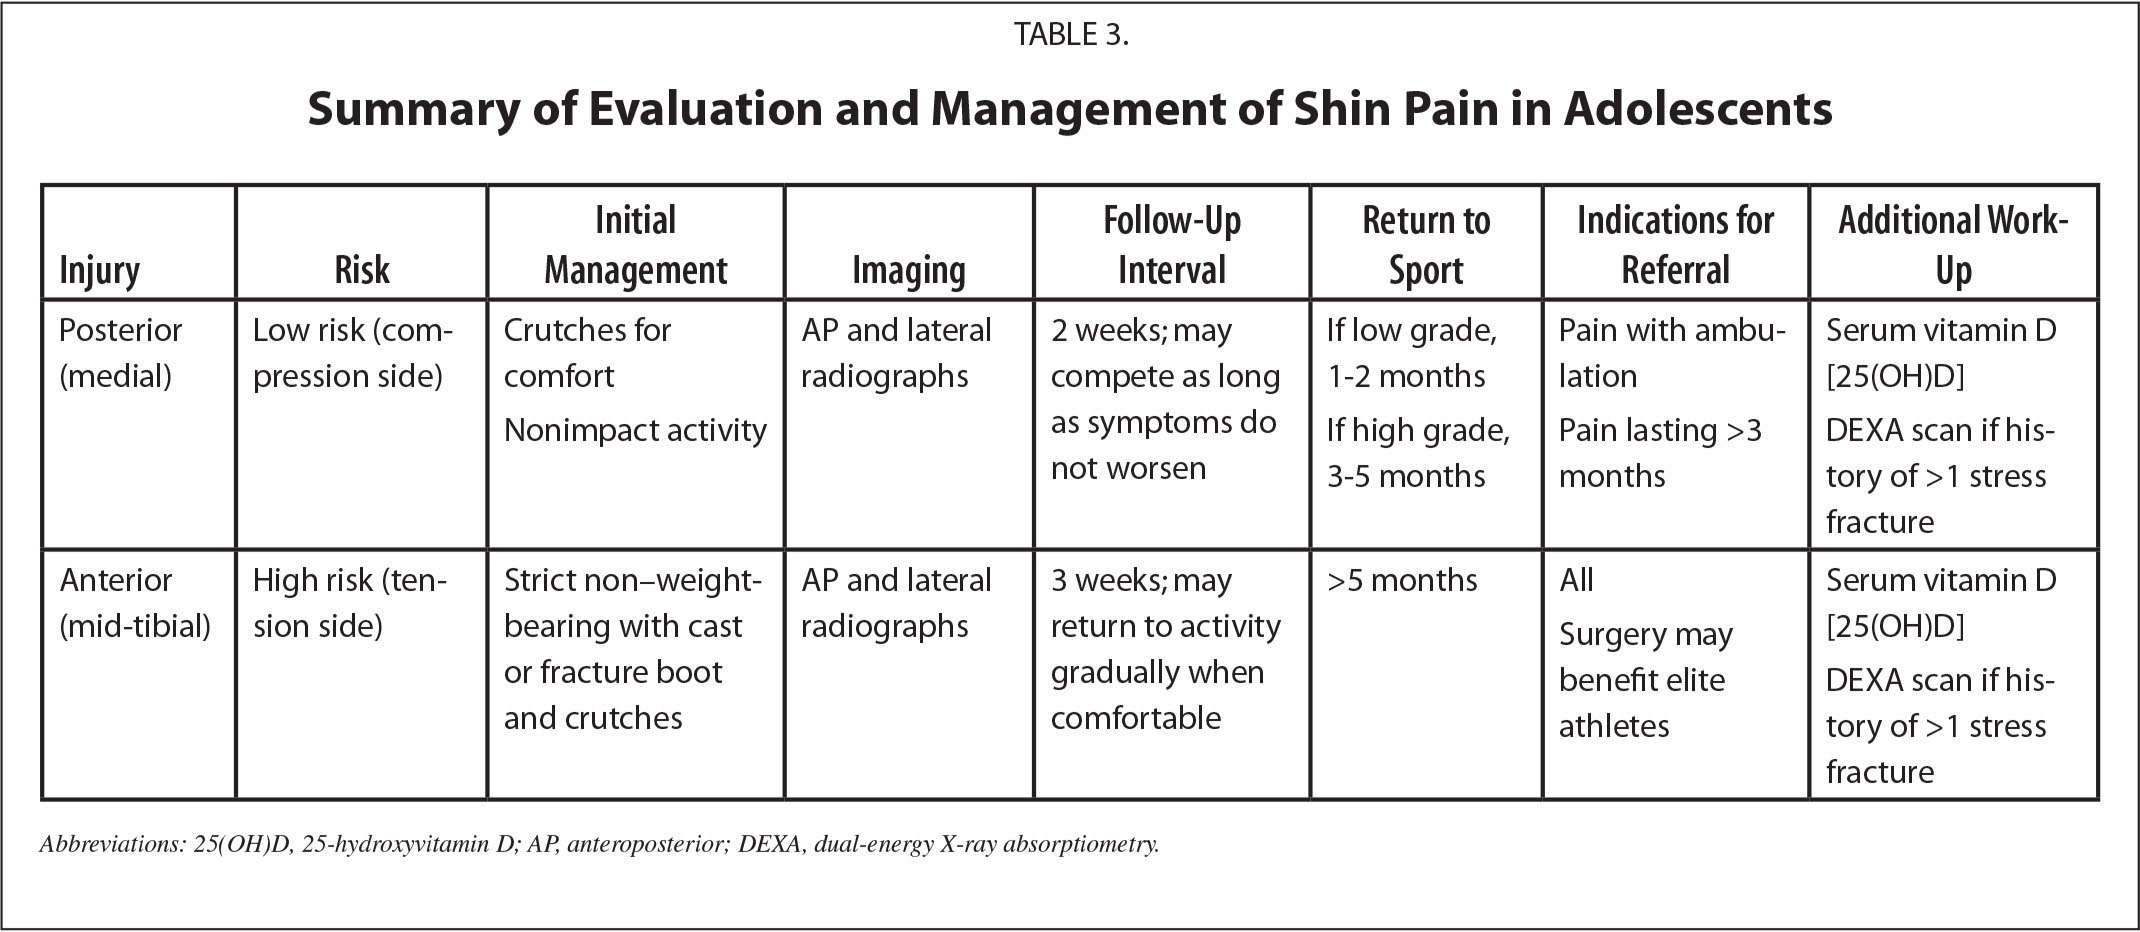 Summary of Evaluation and Management of Shin Pain in Adolescents